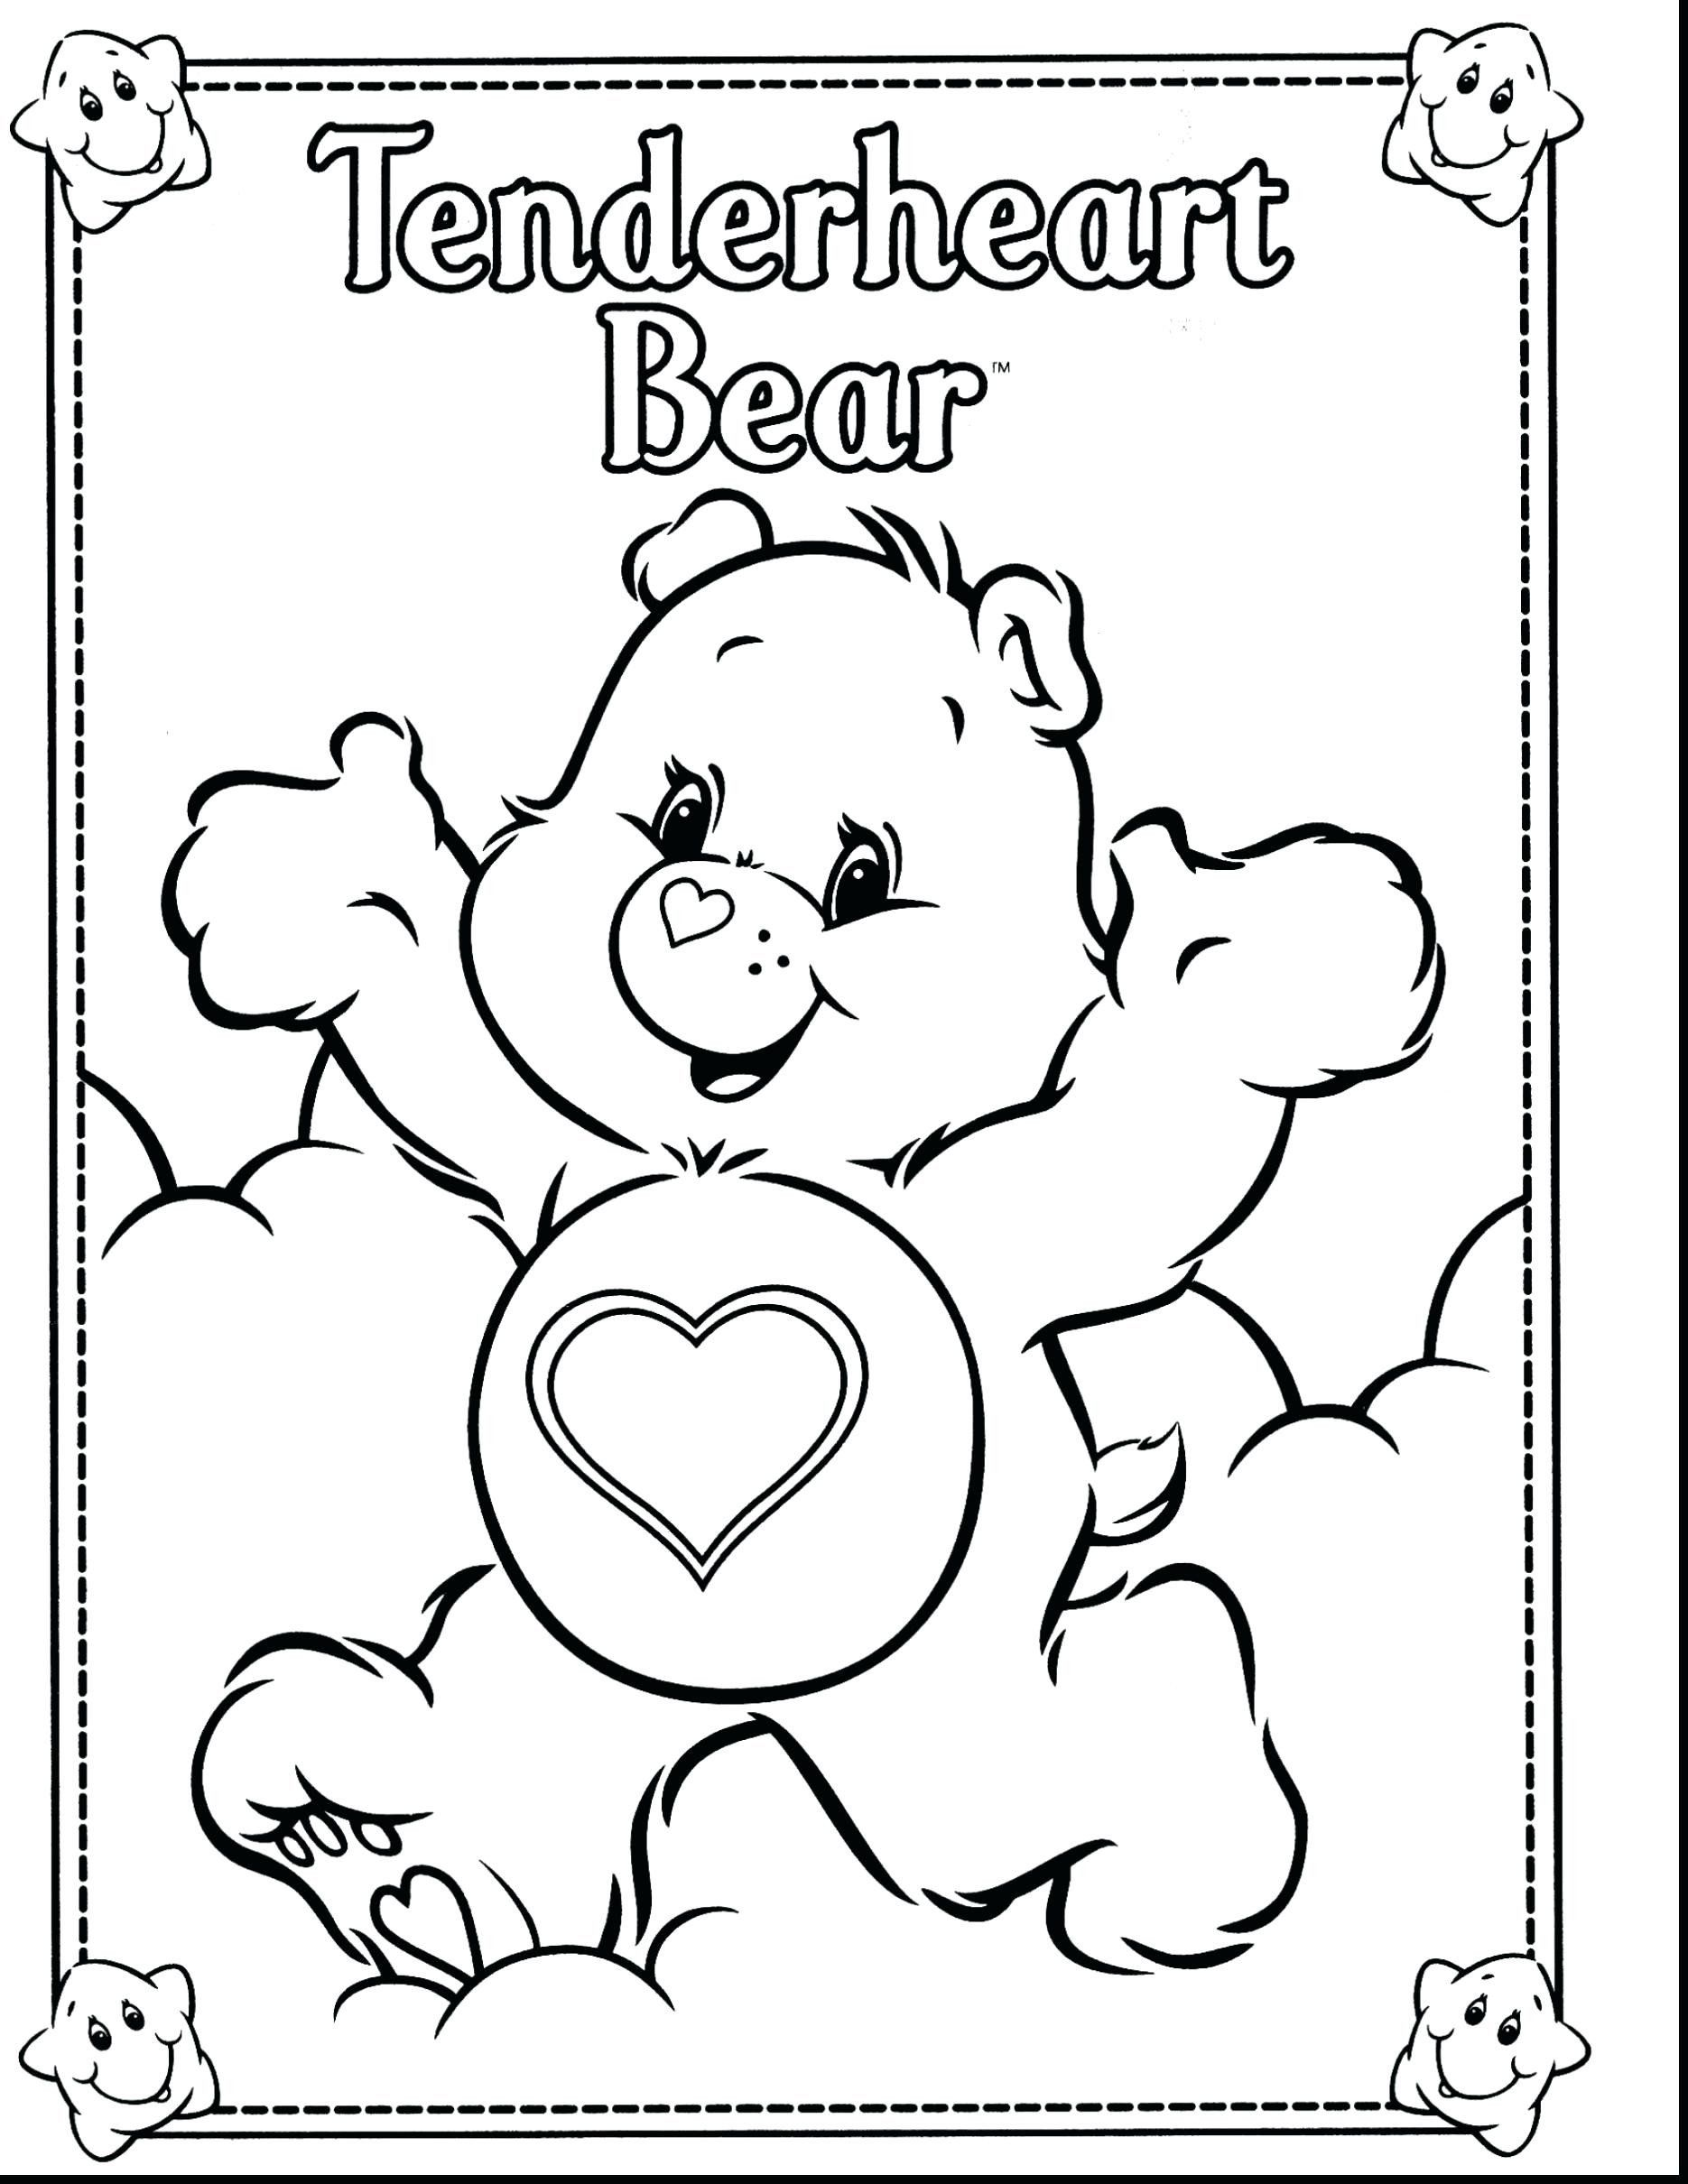 30 Lovely Care Bears Coloring Pages In 2020 Bear Coloring Pages Teddy Bear Coloring Pages Cartoon Coloring Pages